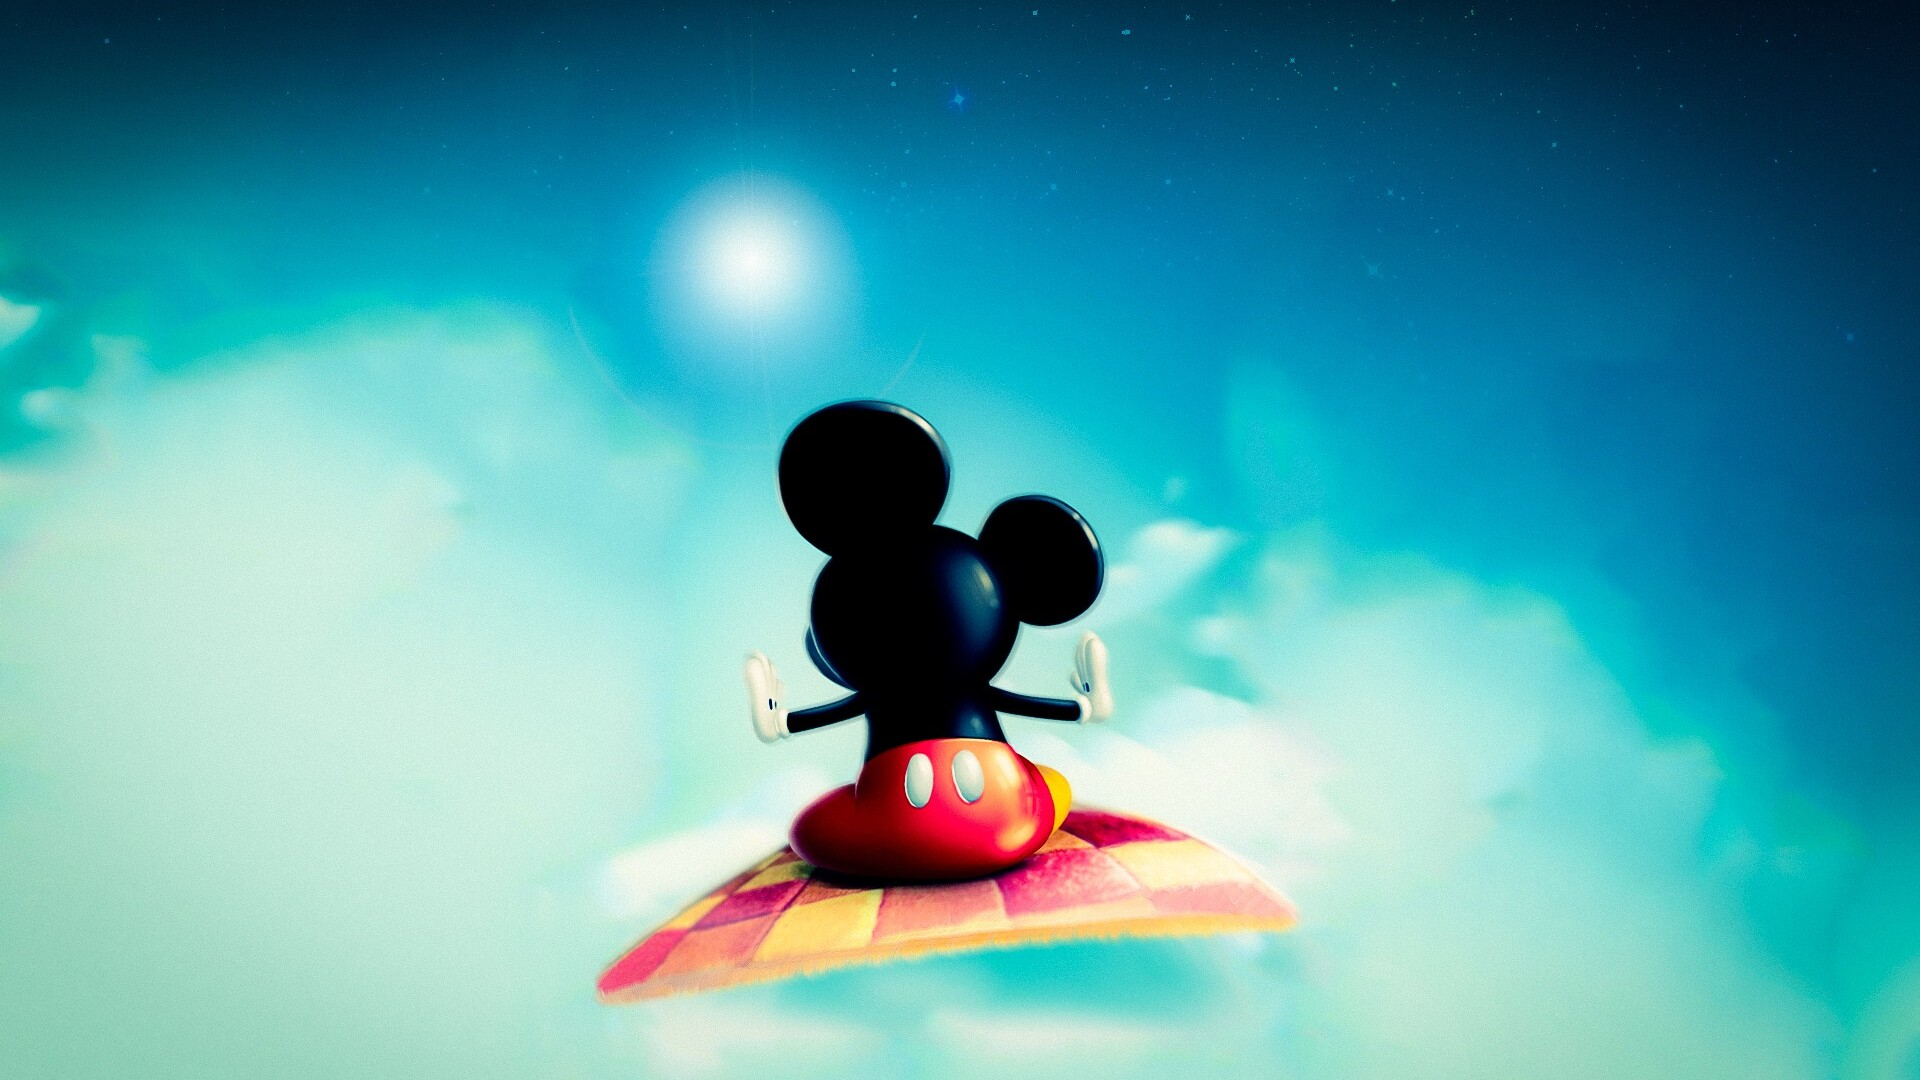 Minnie Mouse Teppich 1920x1080 Mickey Mouse Carpet Laptop Full Hd 1080p Hd 4k